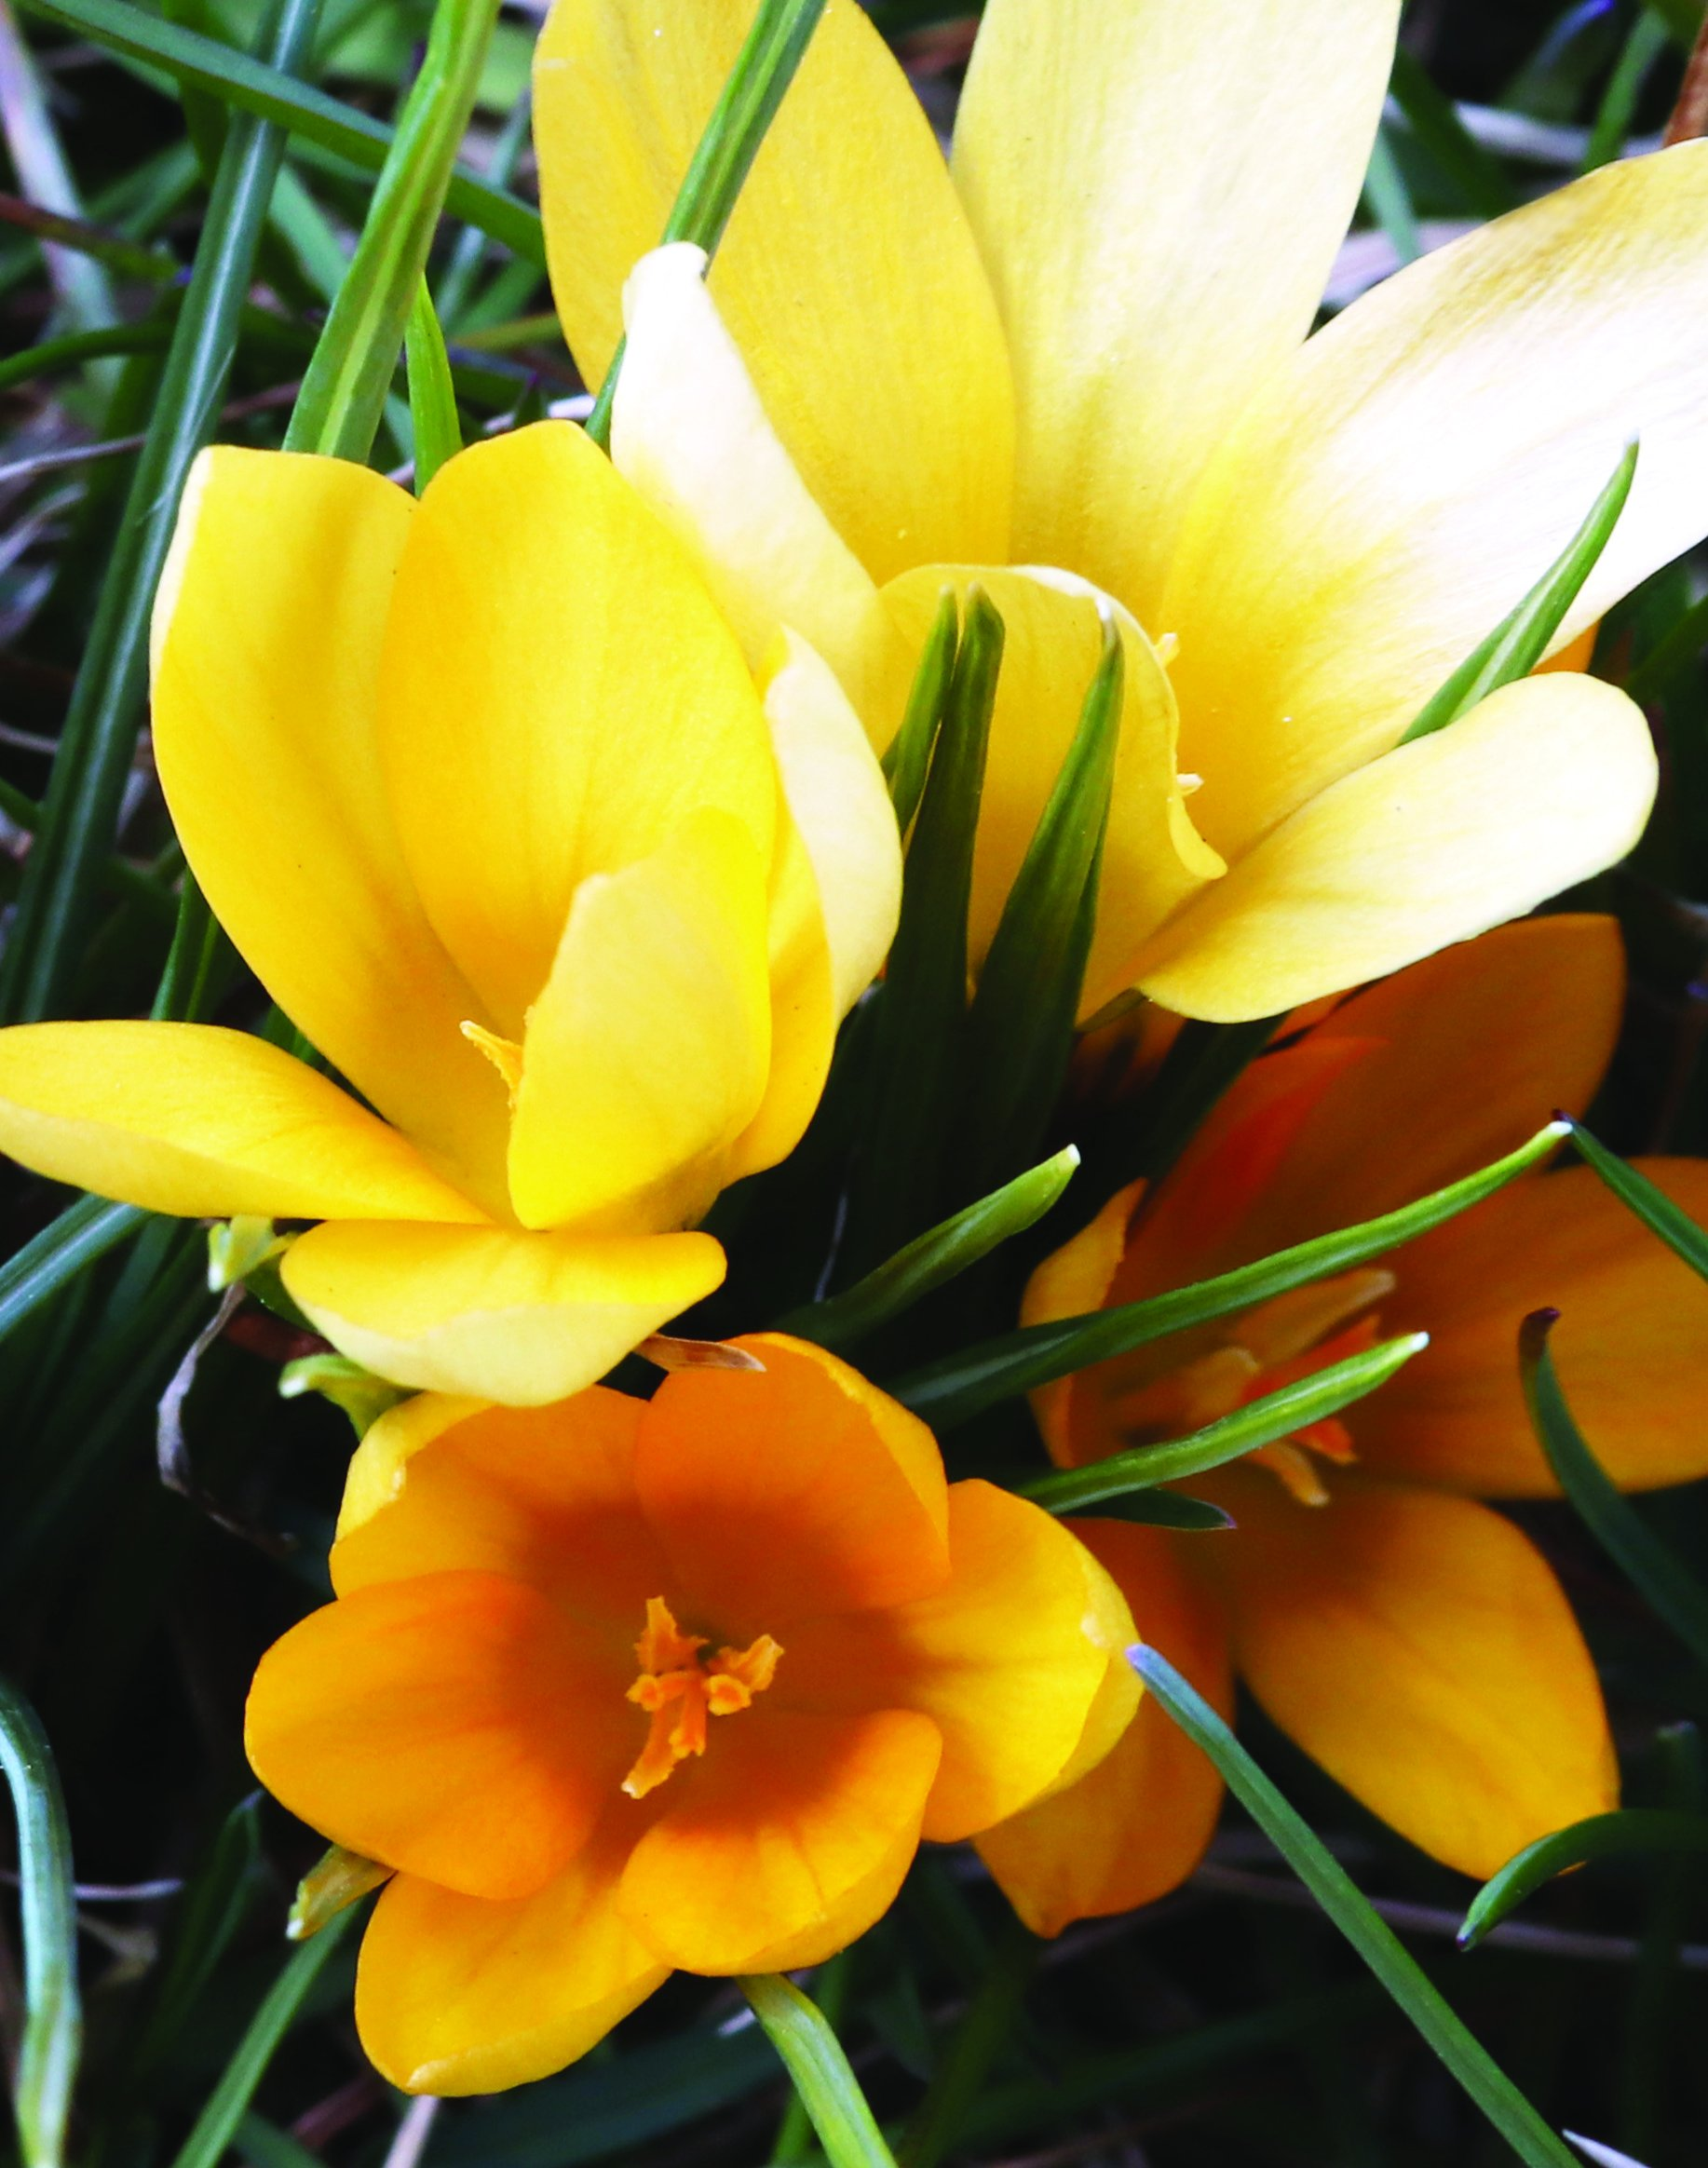 Burpee's Yellow Mammoth Crocus - 15 Large Flower Bulbs| Yellow | 9 - 11cm Bulb Diameter